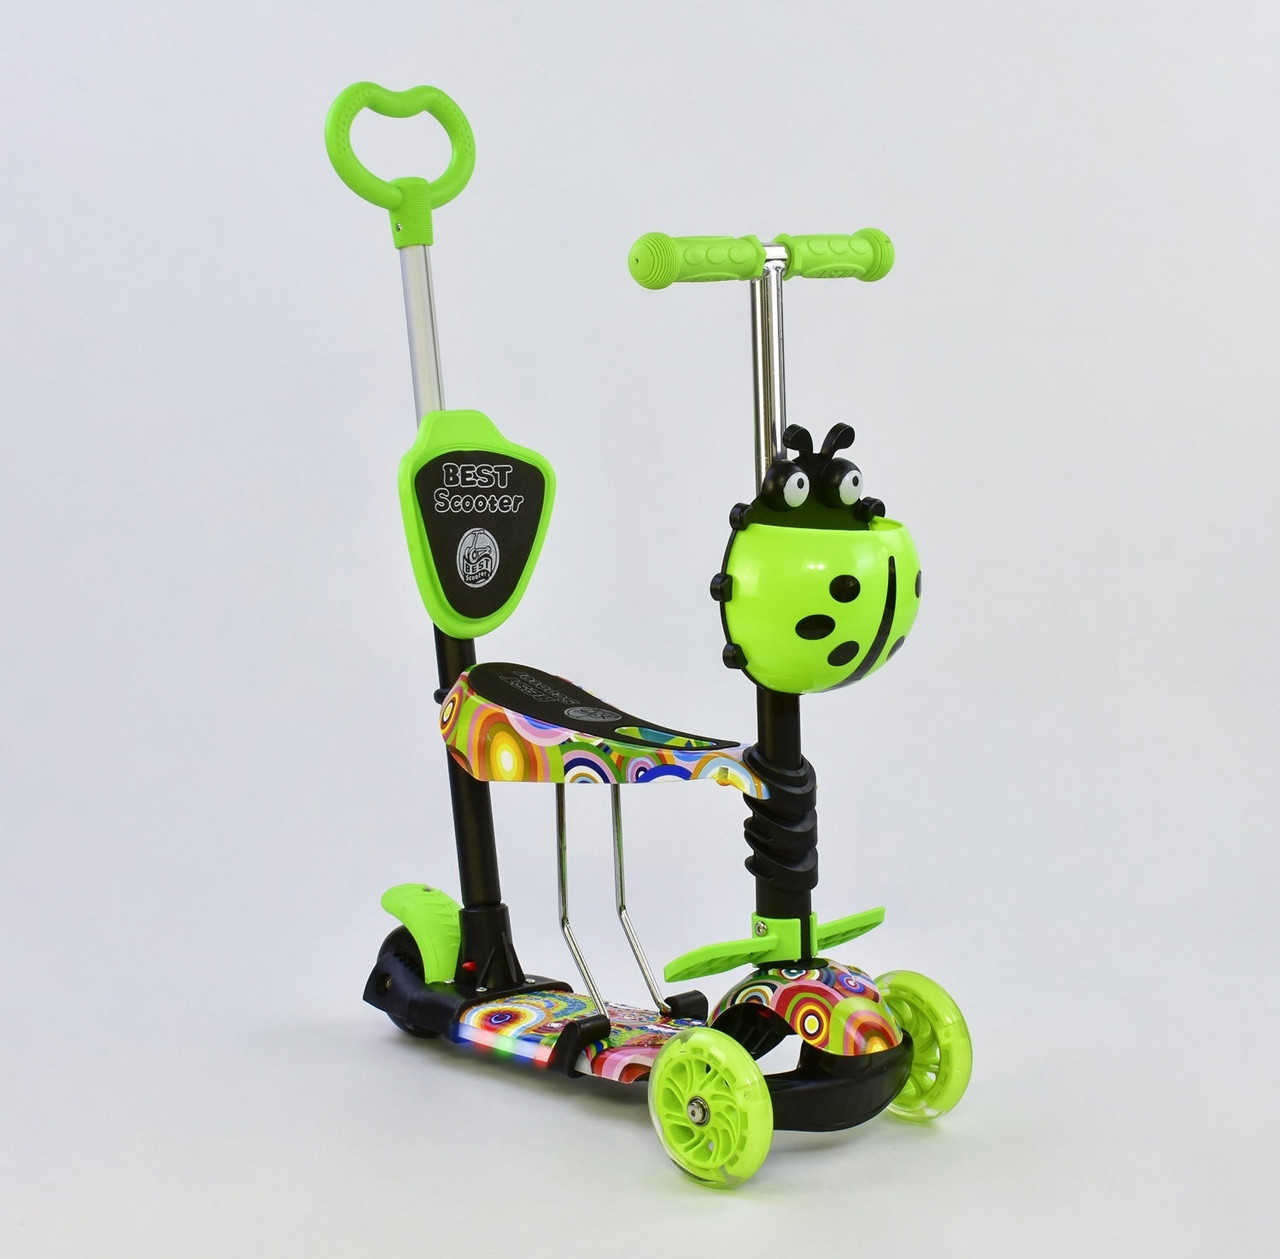 Best Scooter Самокат 5 в 1 Best Scooter 71205 Green/Abstraction (71205)